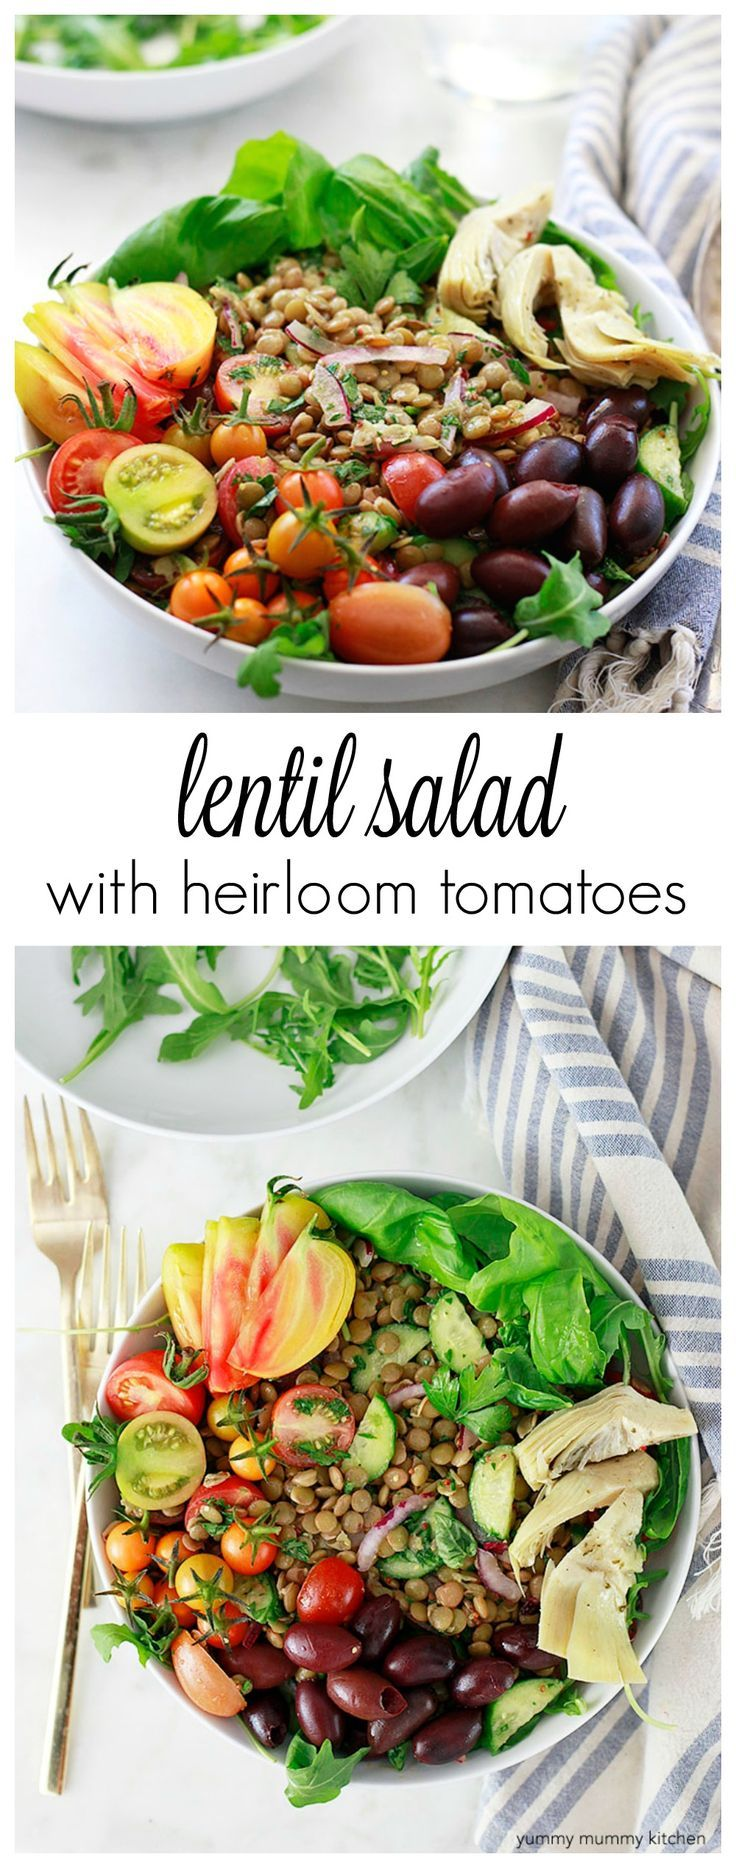 The BEST lentil salad! This vegan lentil salad with heirloom tomatoes, cucumber, and mustard vinaigrette is so good. Keep a batch in the fridge and eat well all week long. Lentils are a great source of plant-based protein and iron.